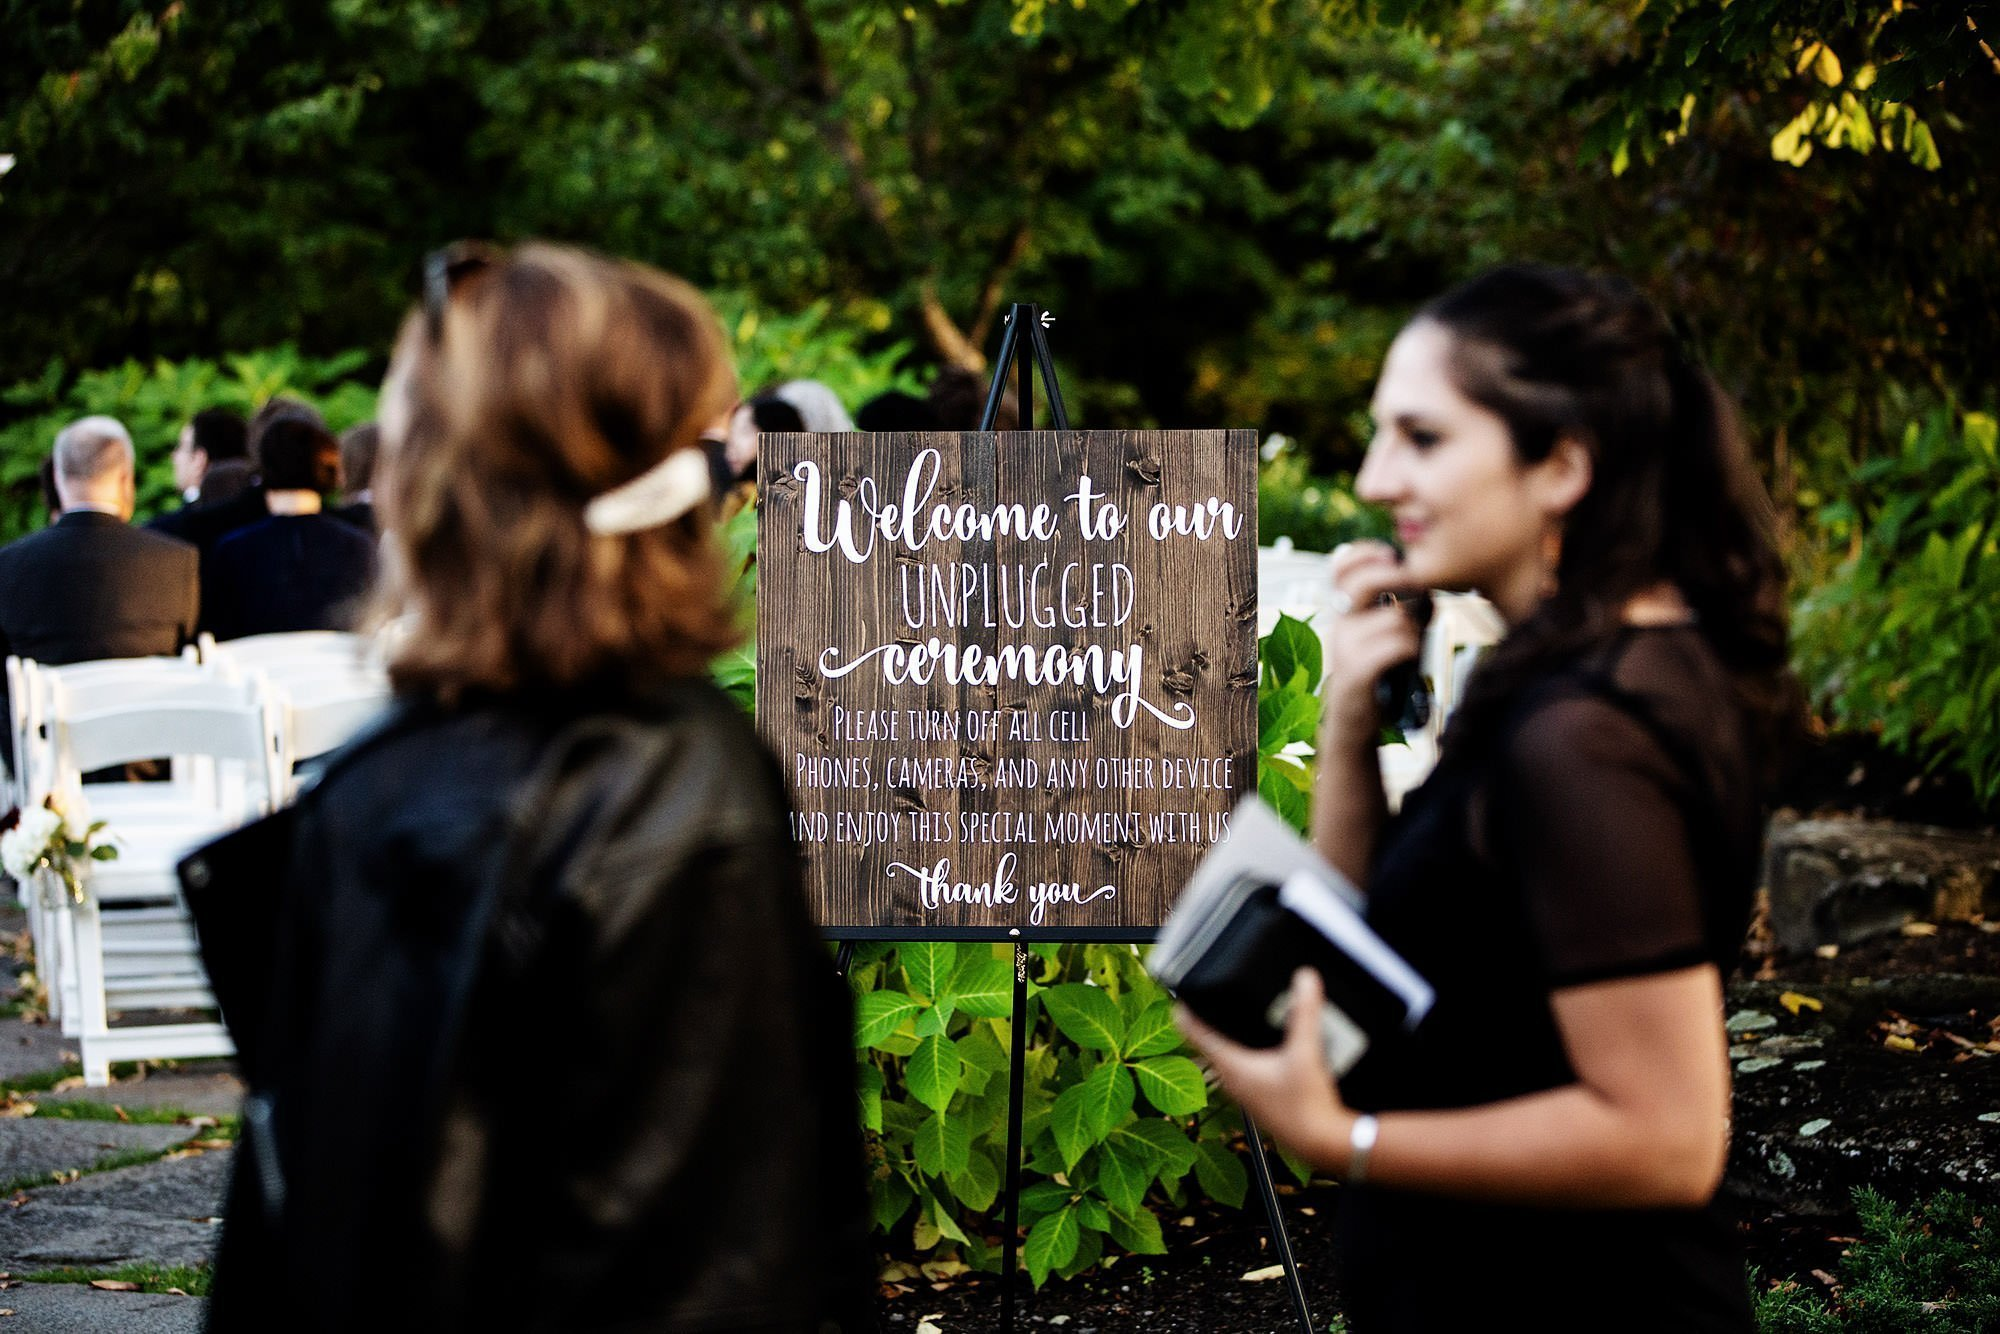 Harrington Farm Wedding  I  A sign greets guests as they arrive for the ceremony.